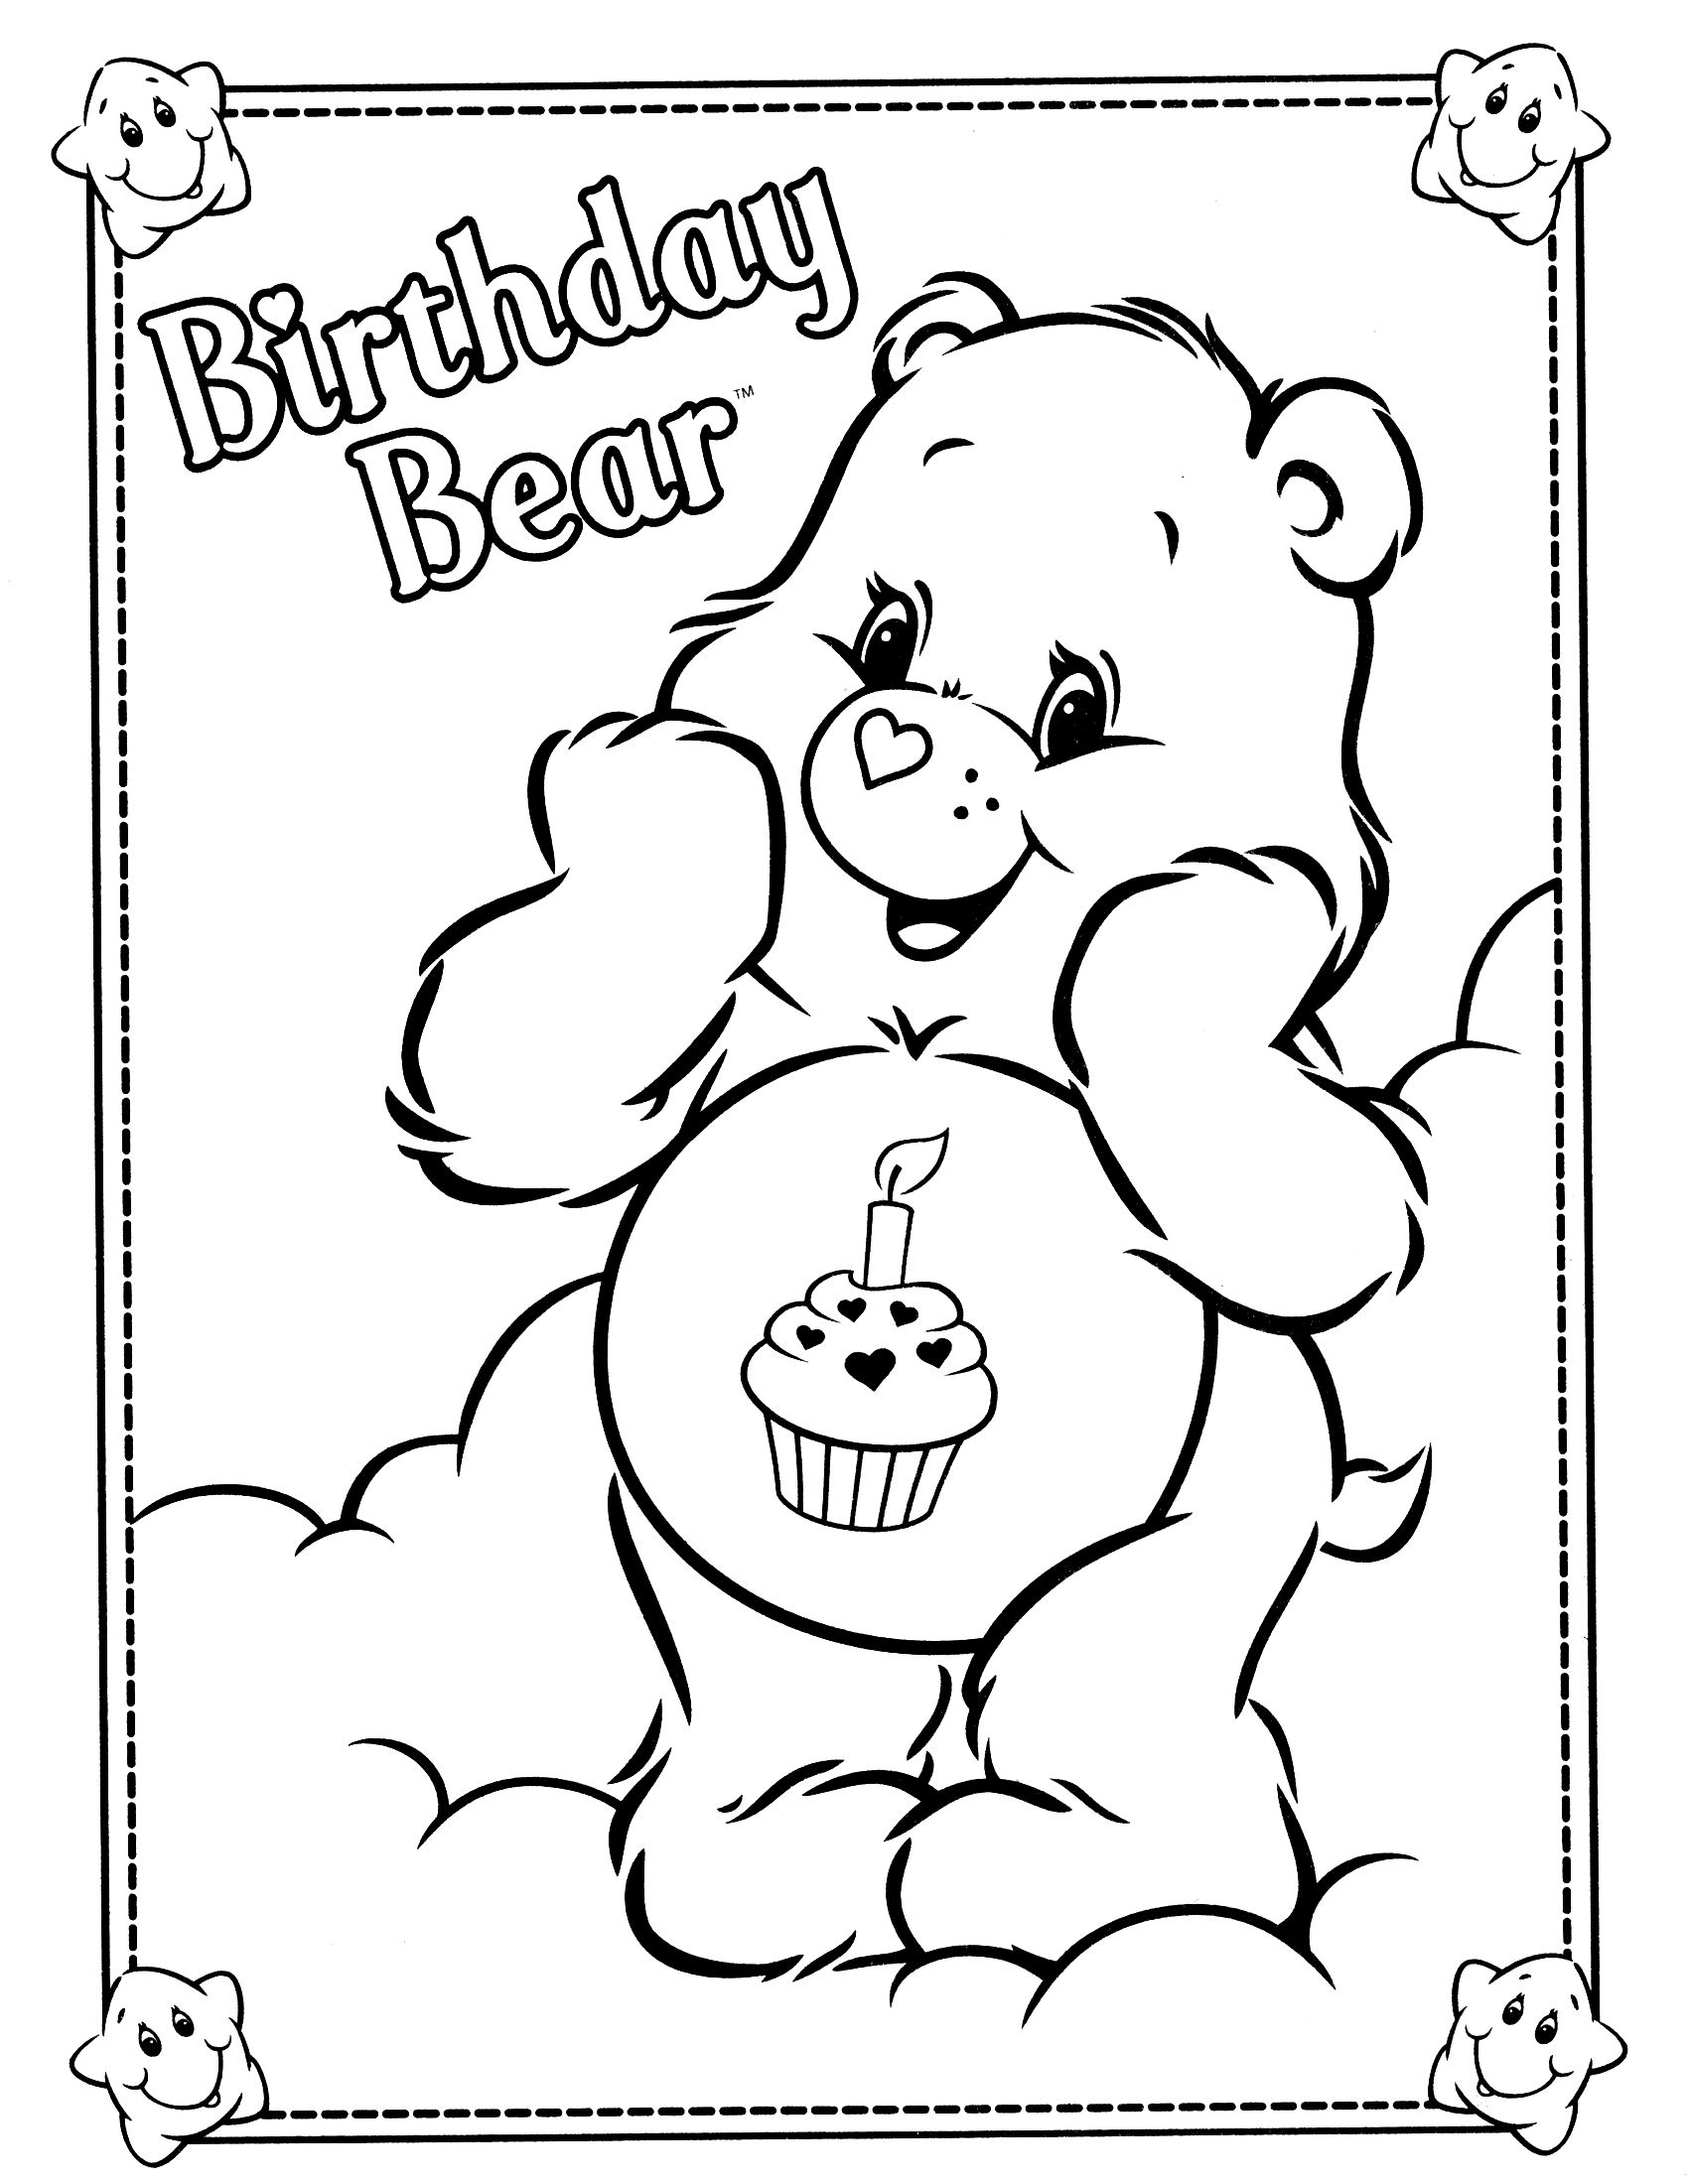 care bears coloring page Cakes